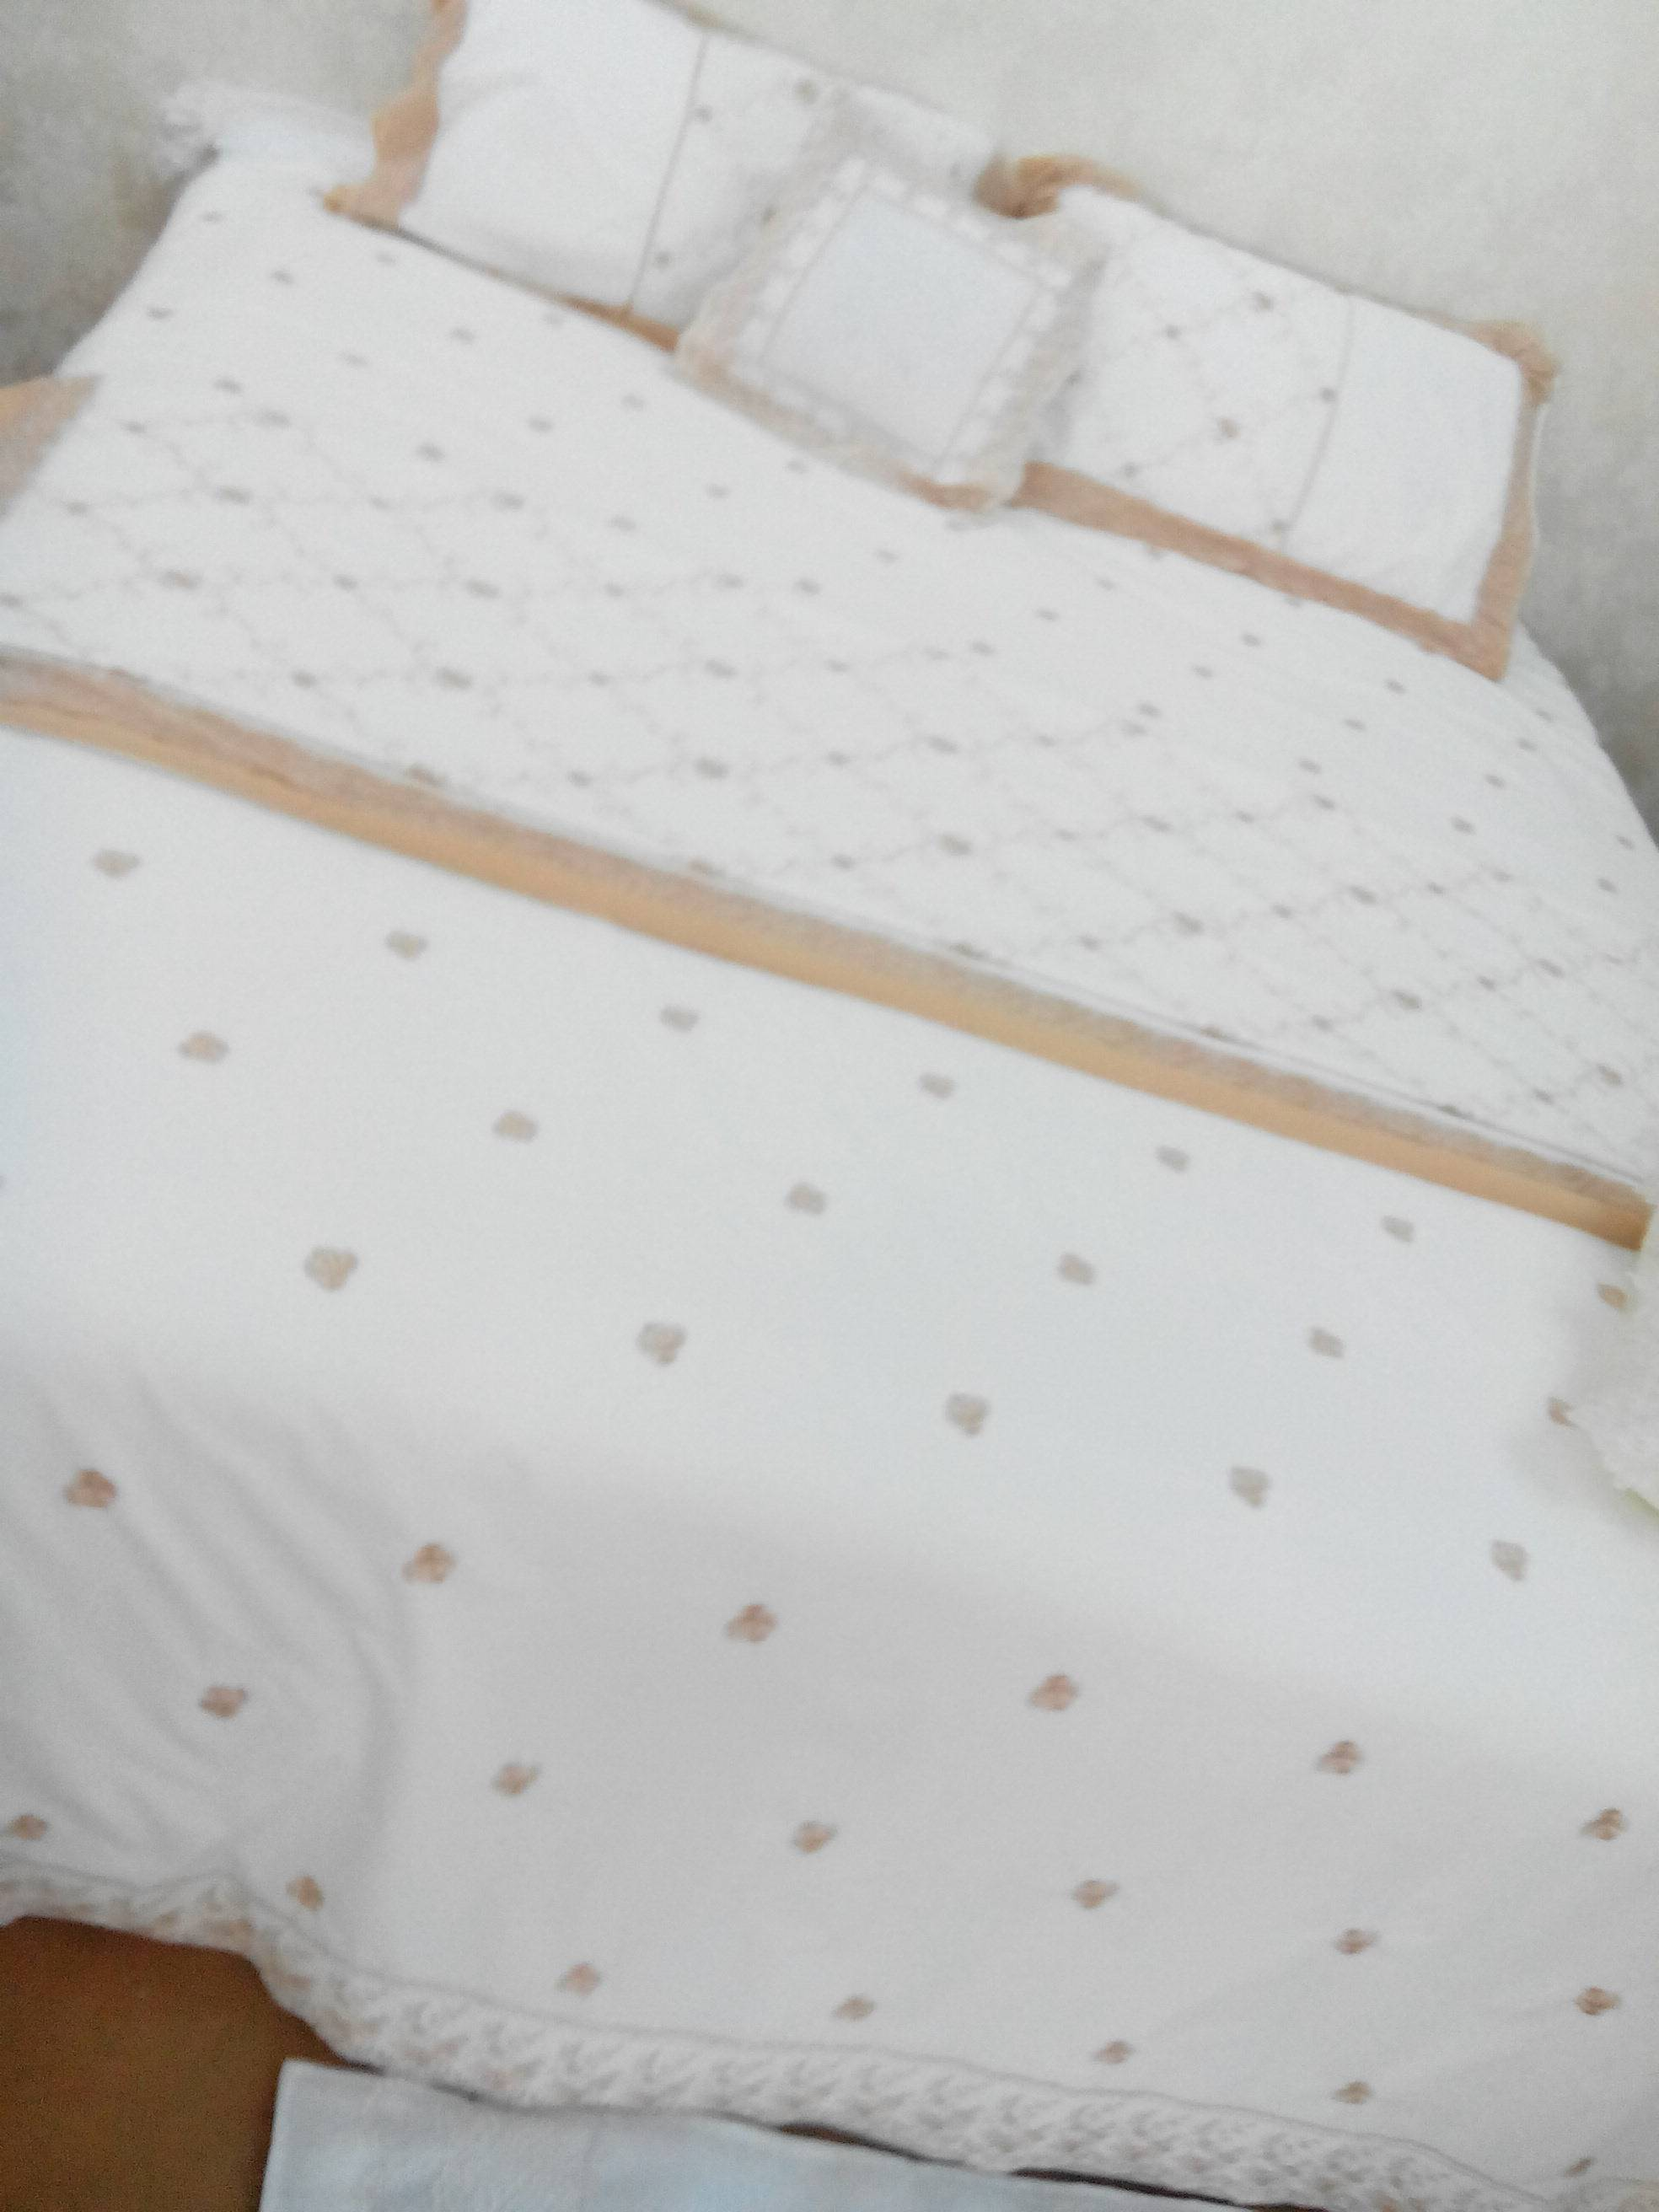 embroidery bedding embroidered bedding embroideried bedding